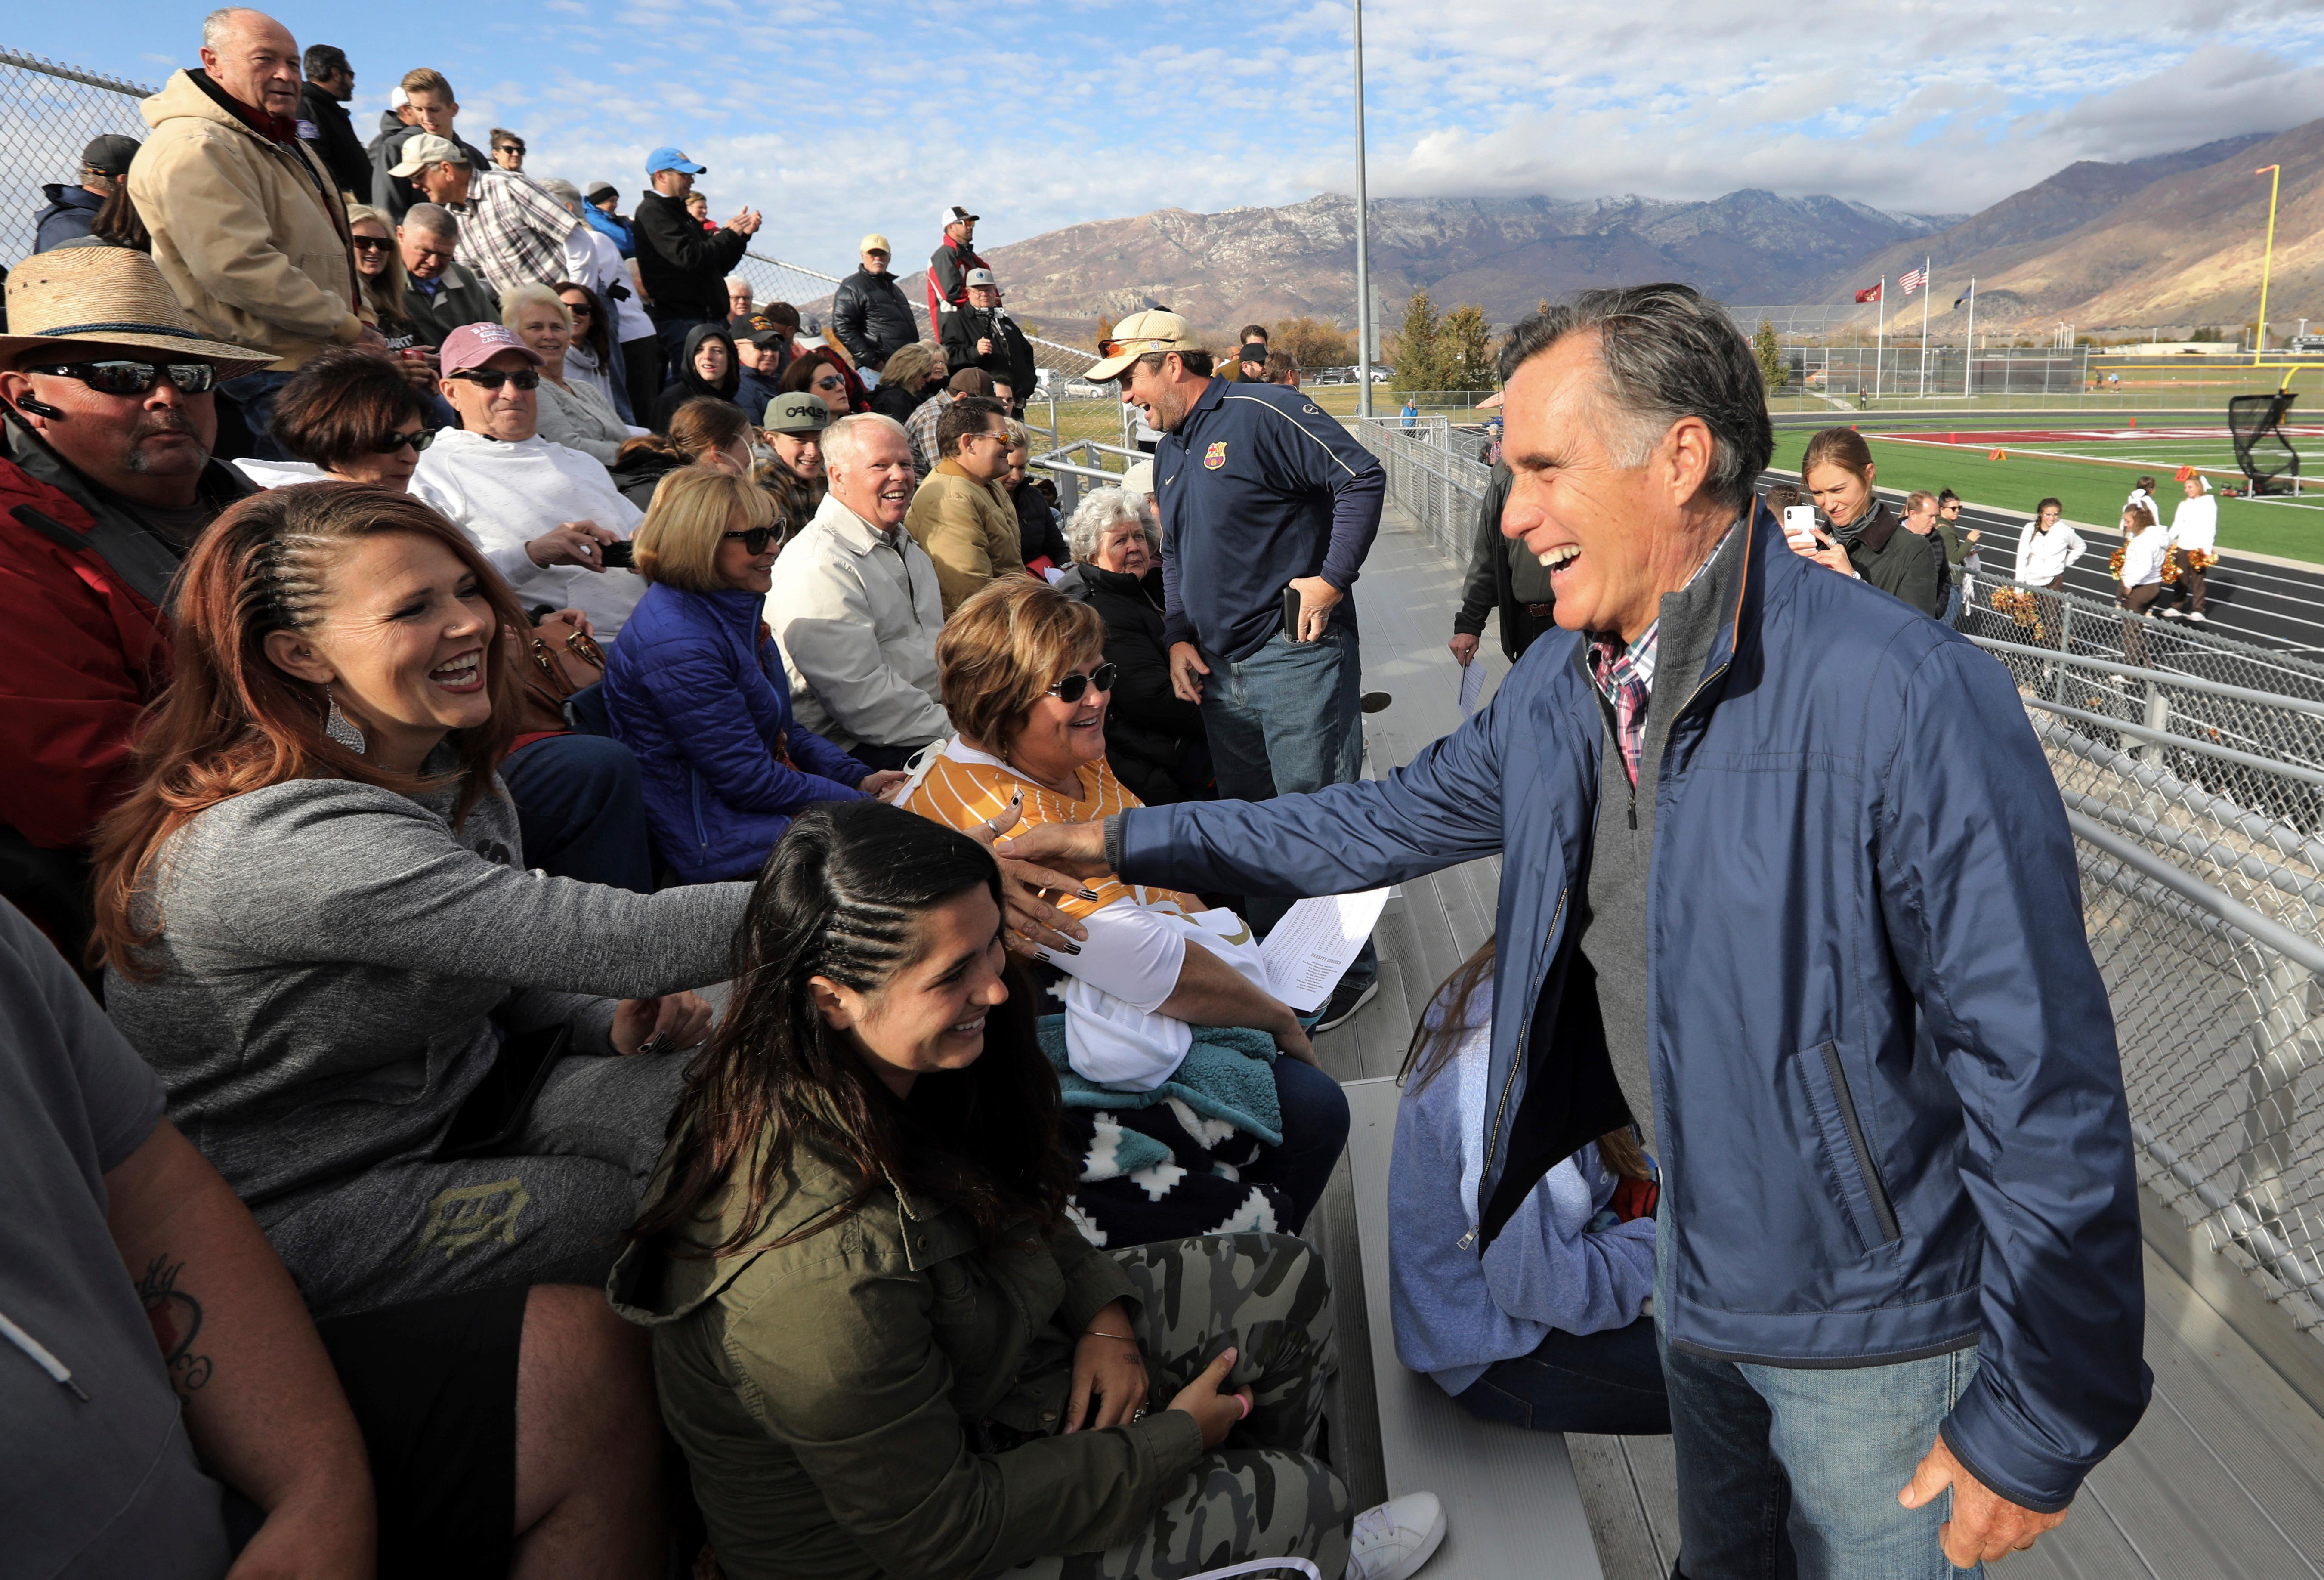 In this Friday, Nov. 2, 2018 photo, former GOP presidential nominee Mitt Romney shakes hands during the Lone Peak High School against Davis High School football game in Highland, Utah. Romney is stumping for fellow Republican candidates as he sails toward a likely victory Tuesday in the race for a U.S. Senate seat from Utah and an official return to public office. (AP Photo/Rick Bowmer)